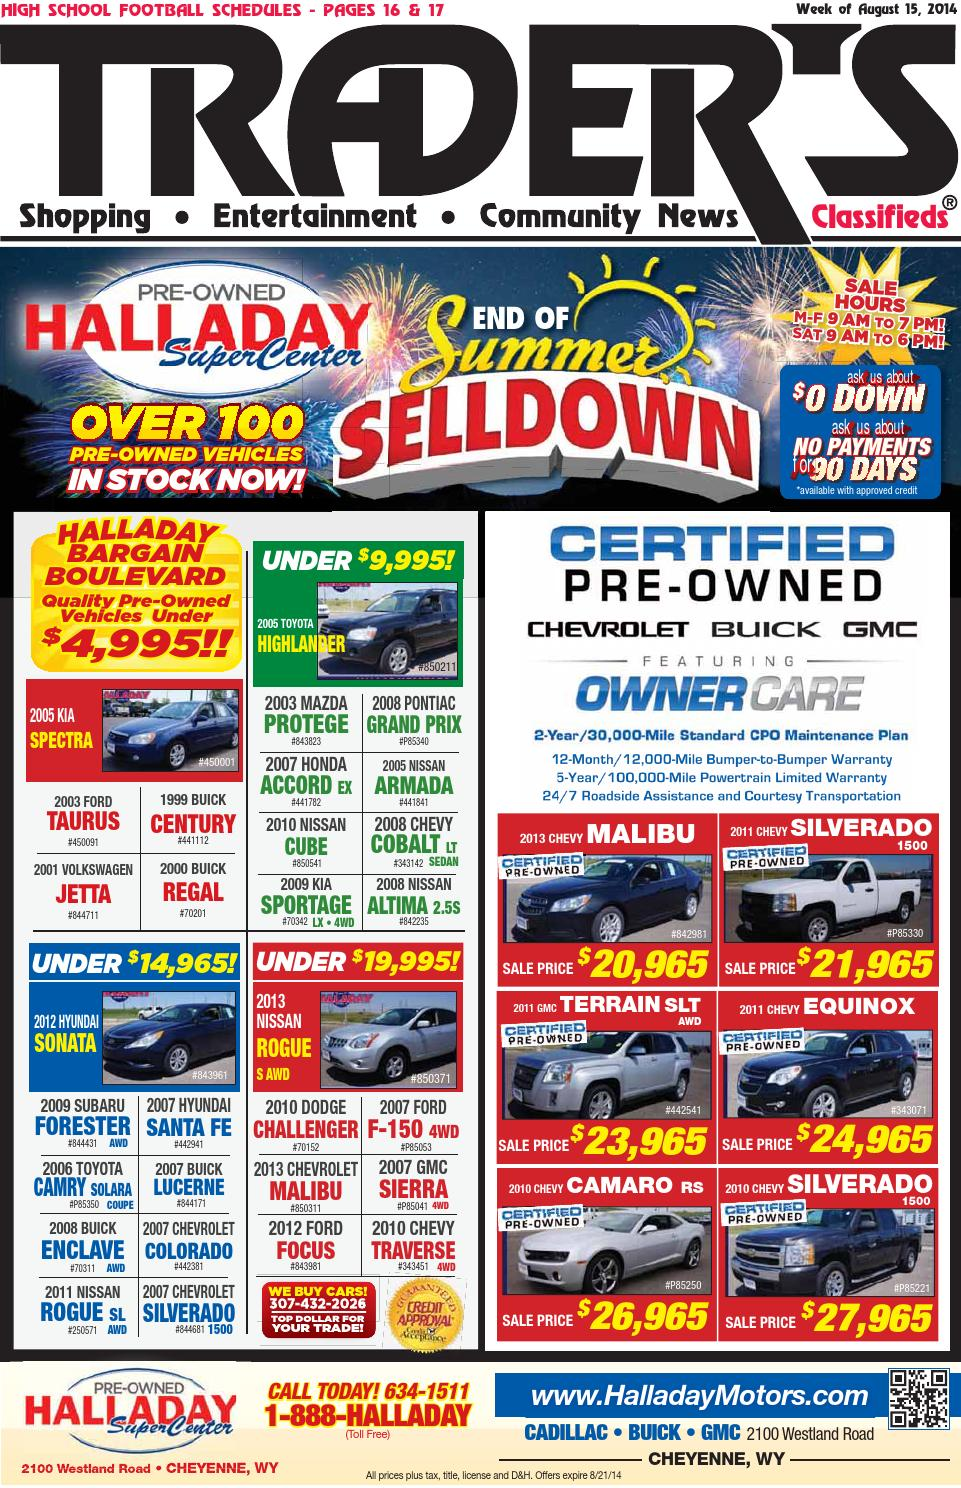 Trader S Shopper S Guide 08 14 15 By Trader S Shopper S